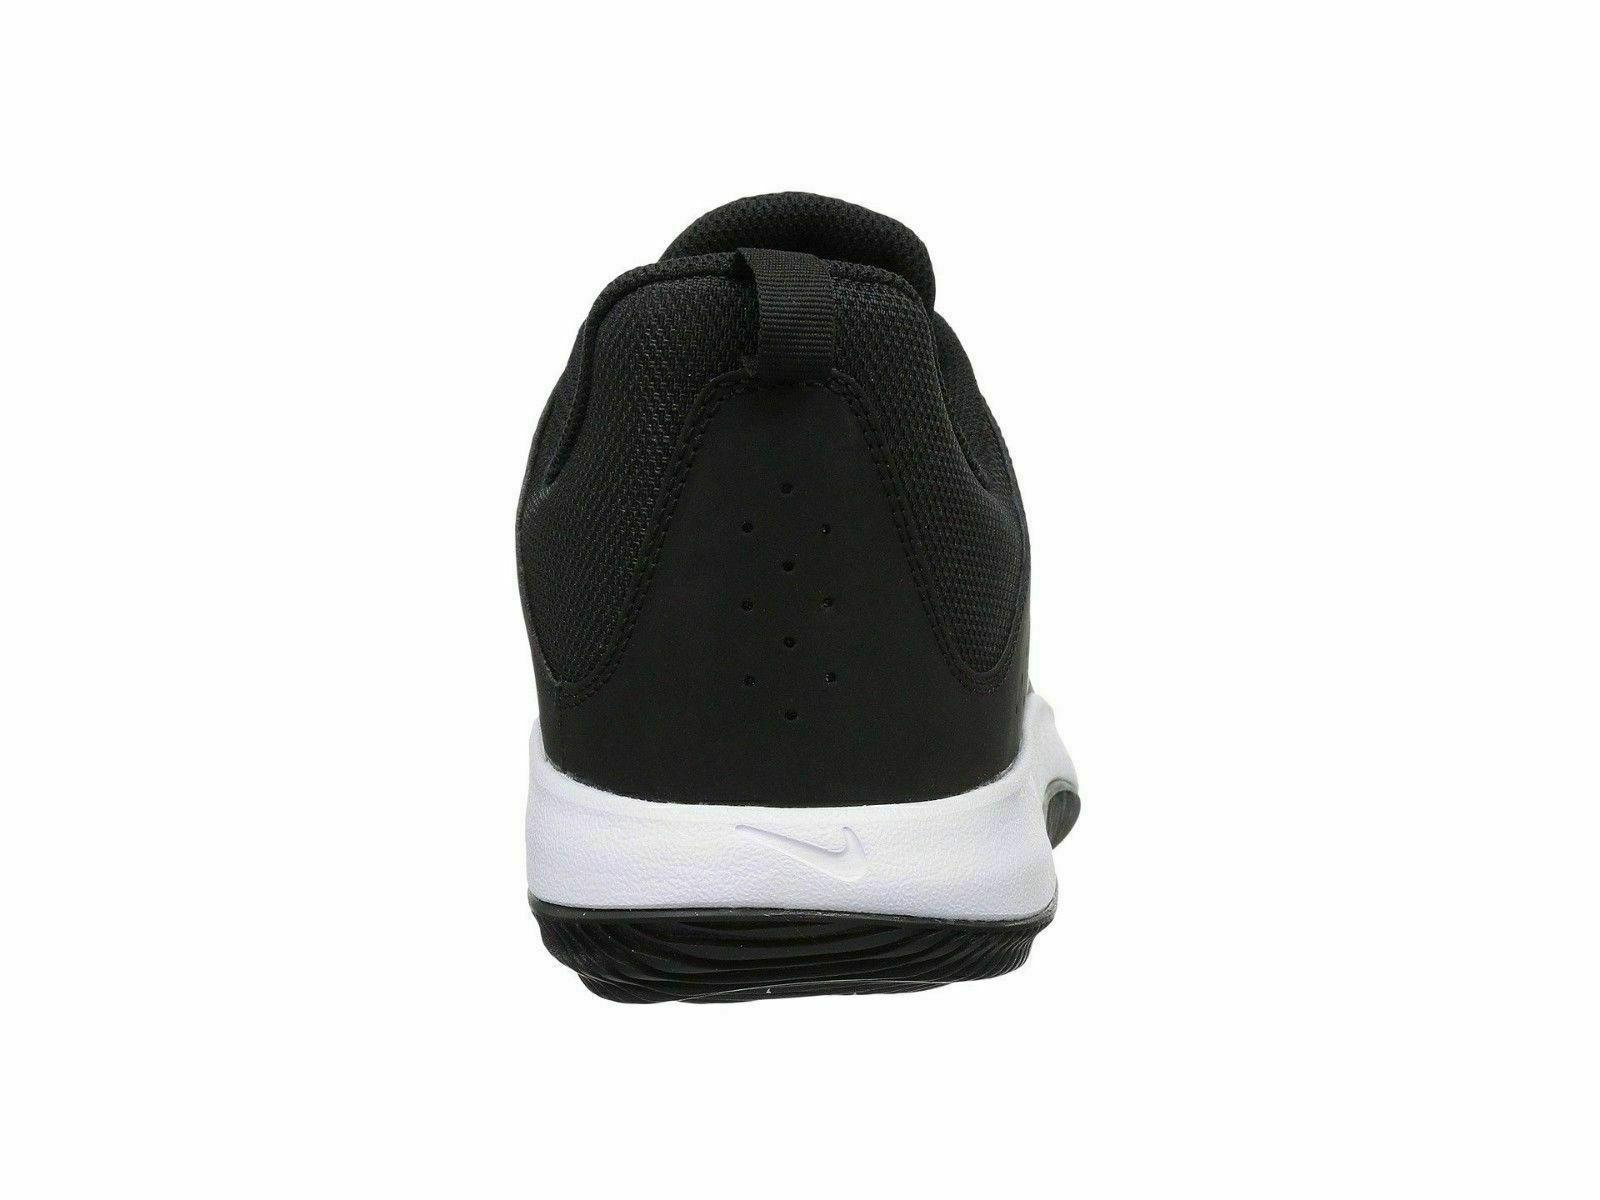 Nike Low Black White Basketball Shoes NEW!